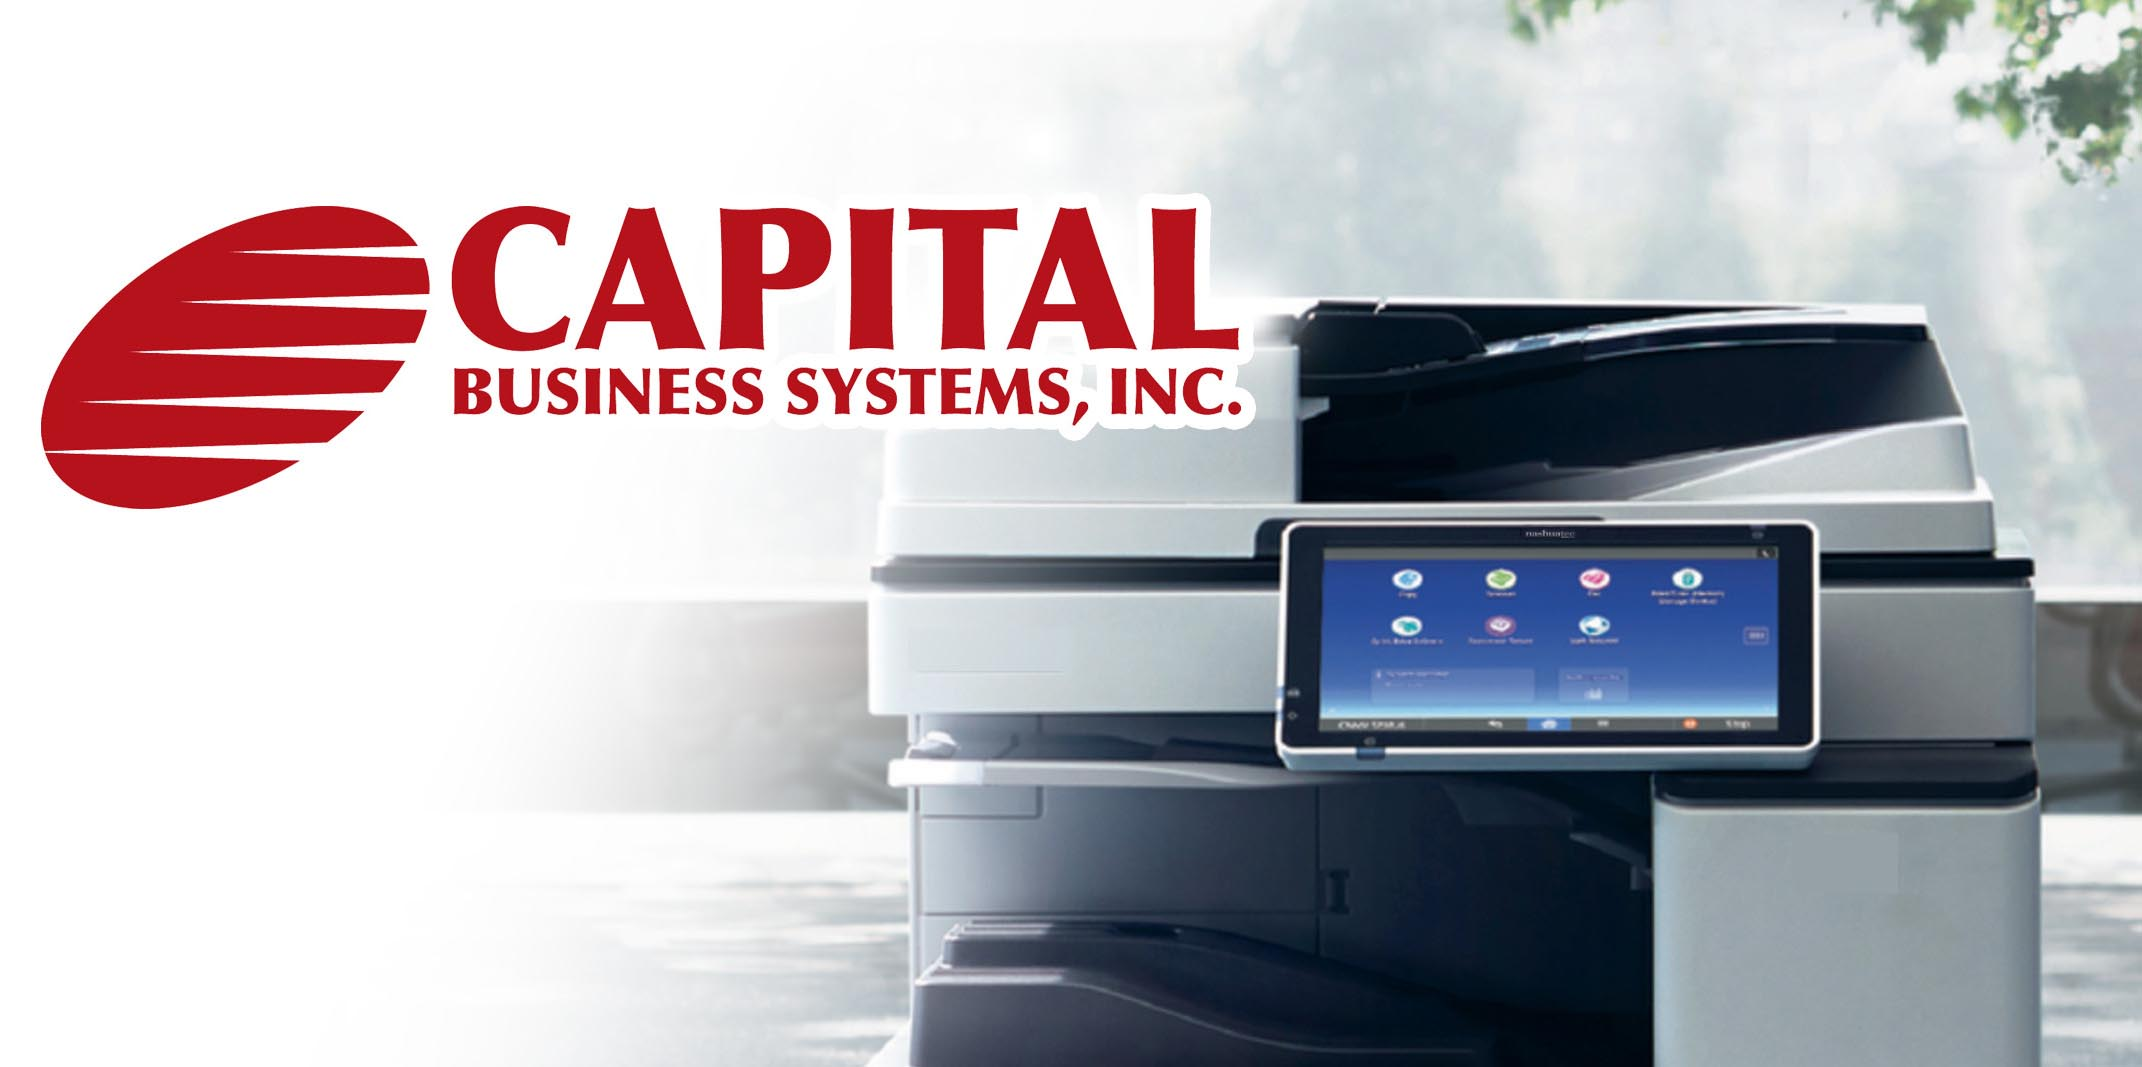 Capital Business Systems, Inc. Slide Image